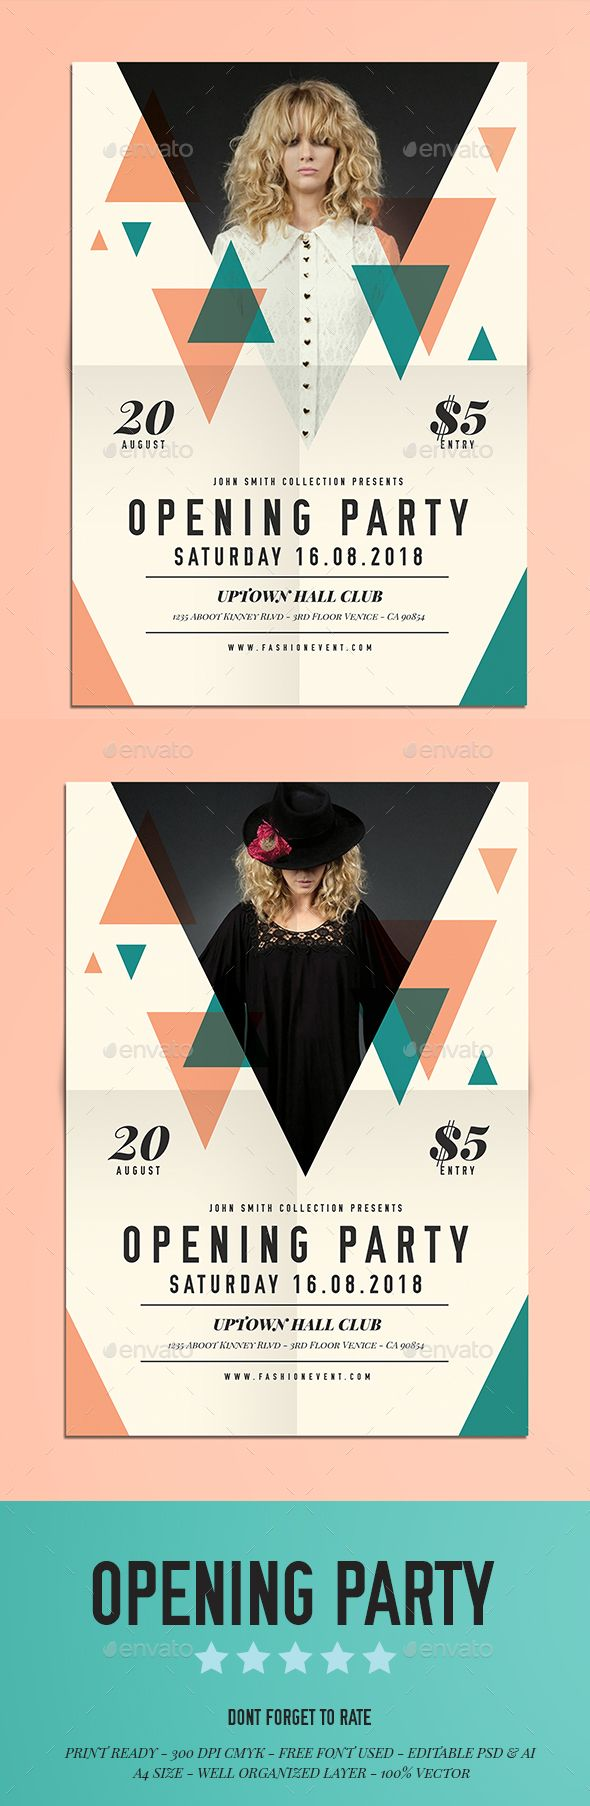 25 best ideas about party flyer on pinterest party poster summer poster and event template for Flyers ideas for events